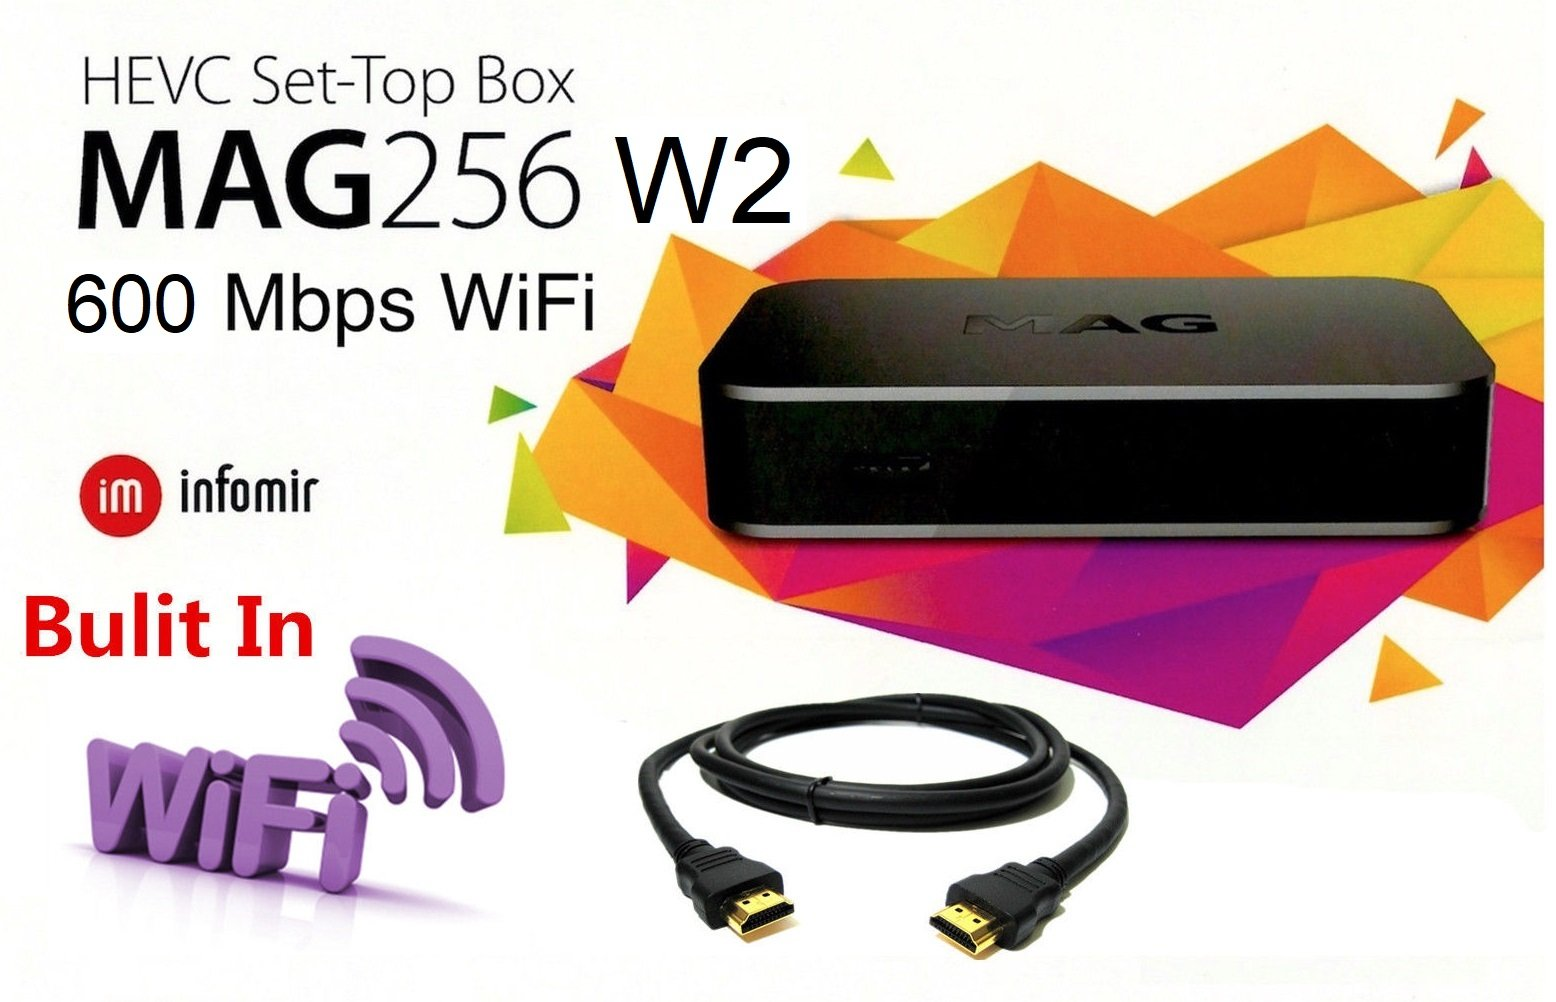 MAG 256 W2 Media Player (HEVC H 265) With Built-In 600Mbps